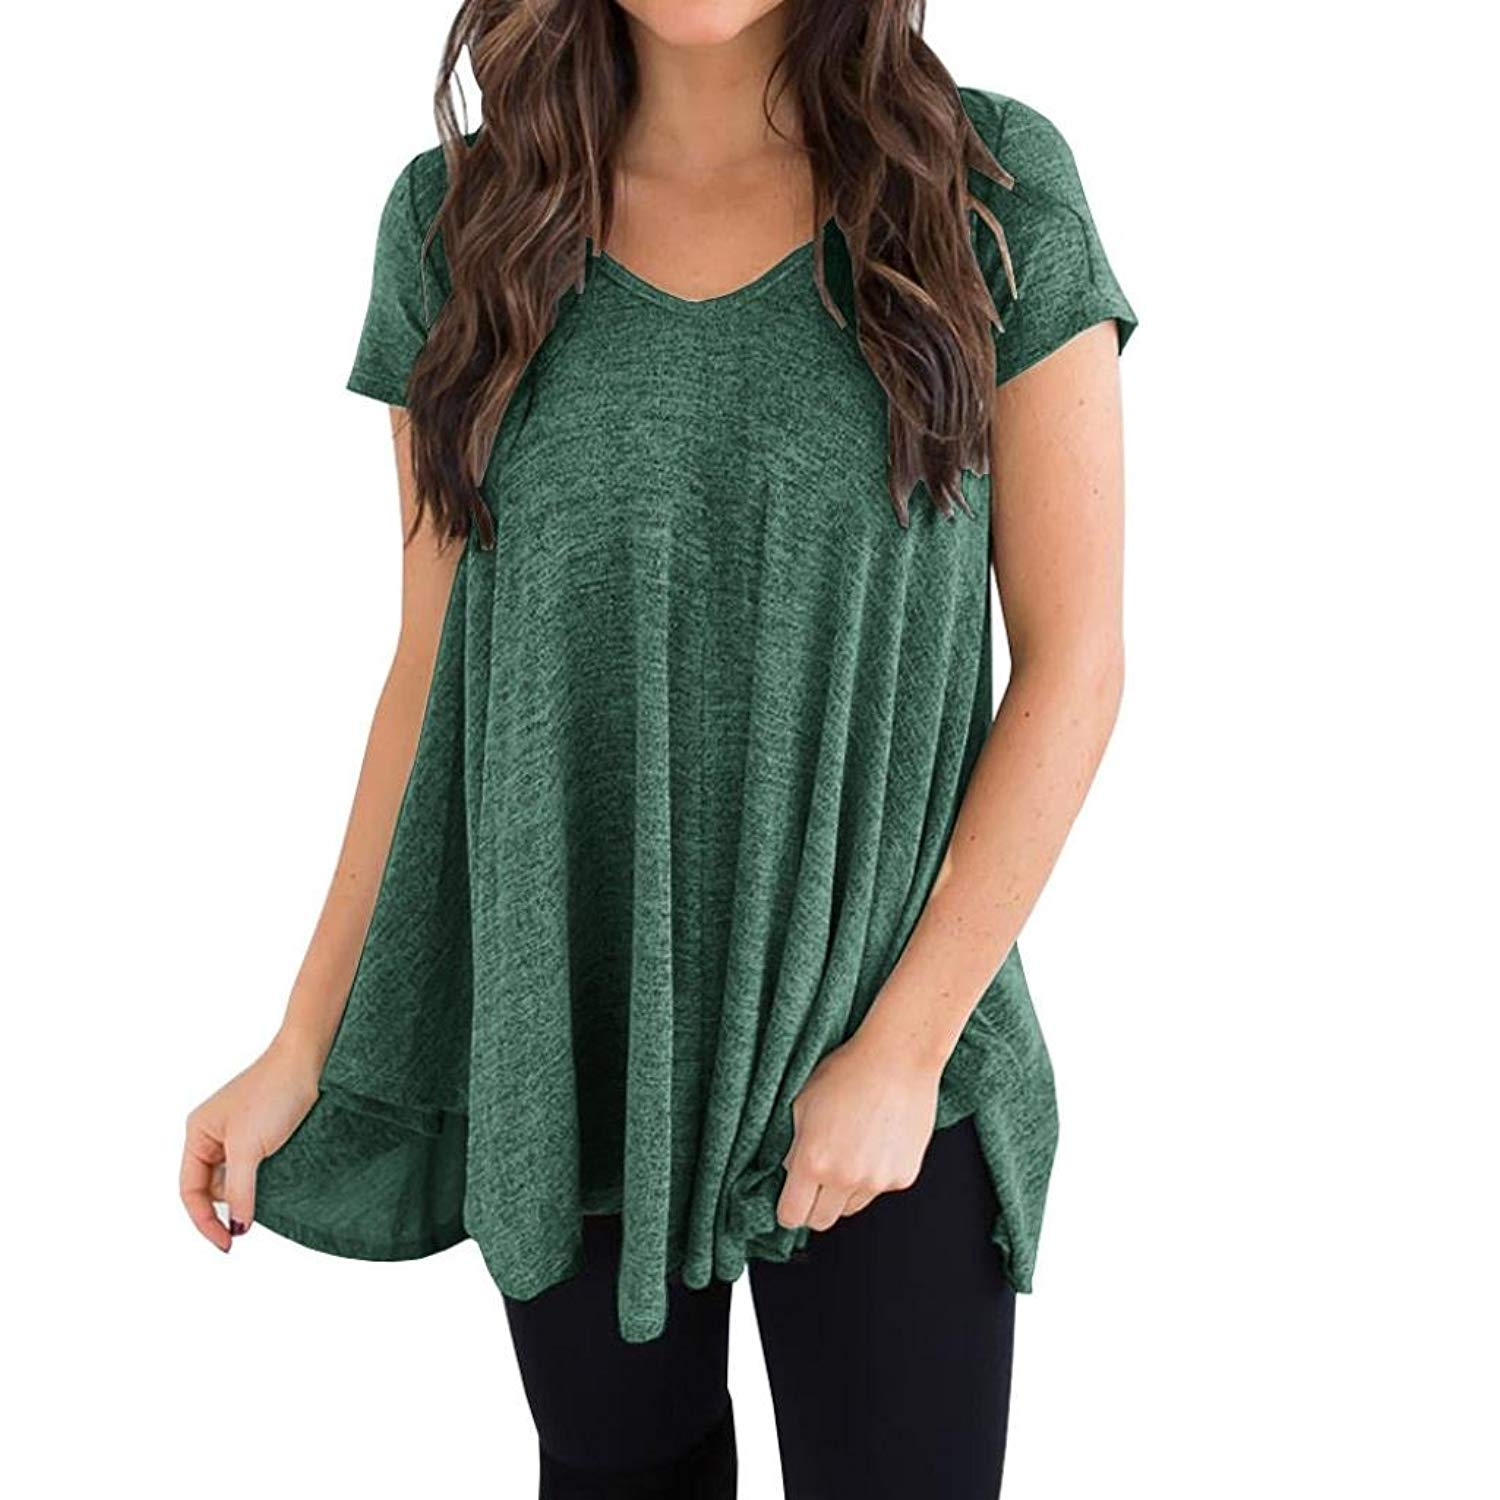 Clearance! Plus Size Tops for Women, Tootu Summer Short Sleeve V-Neck Irregular Hem Loose Casual Tee T-Shirt